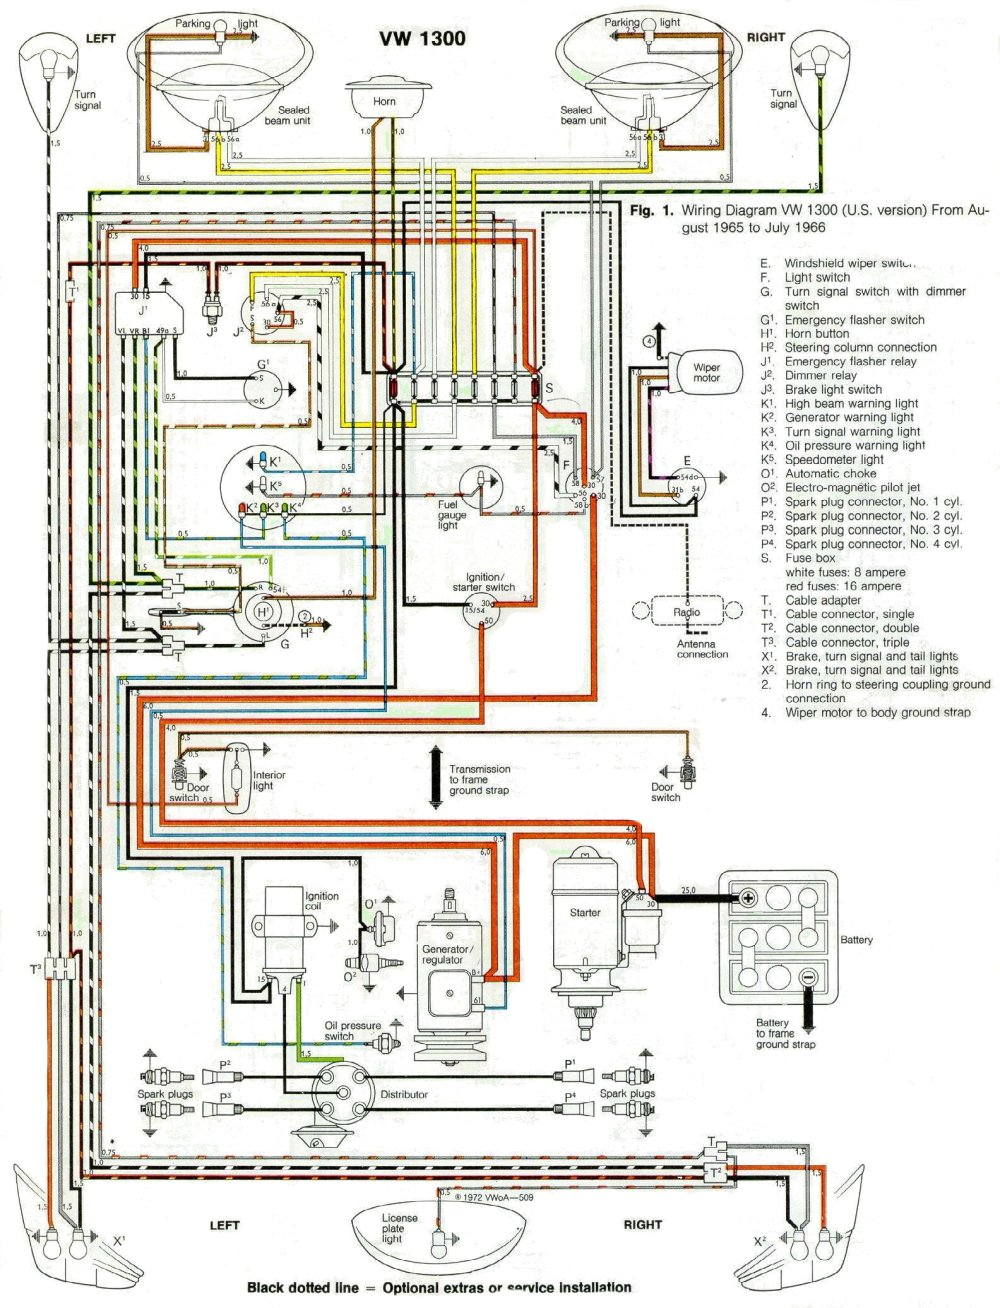 medium resolution of 66 vw wiring diagram wiring diagrams rh casamario de 1967 volkswagen beetle wiring diagram 1967 volkswagen beetle wiring diagram